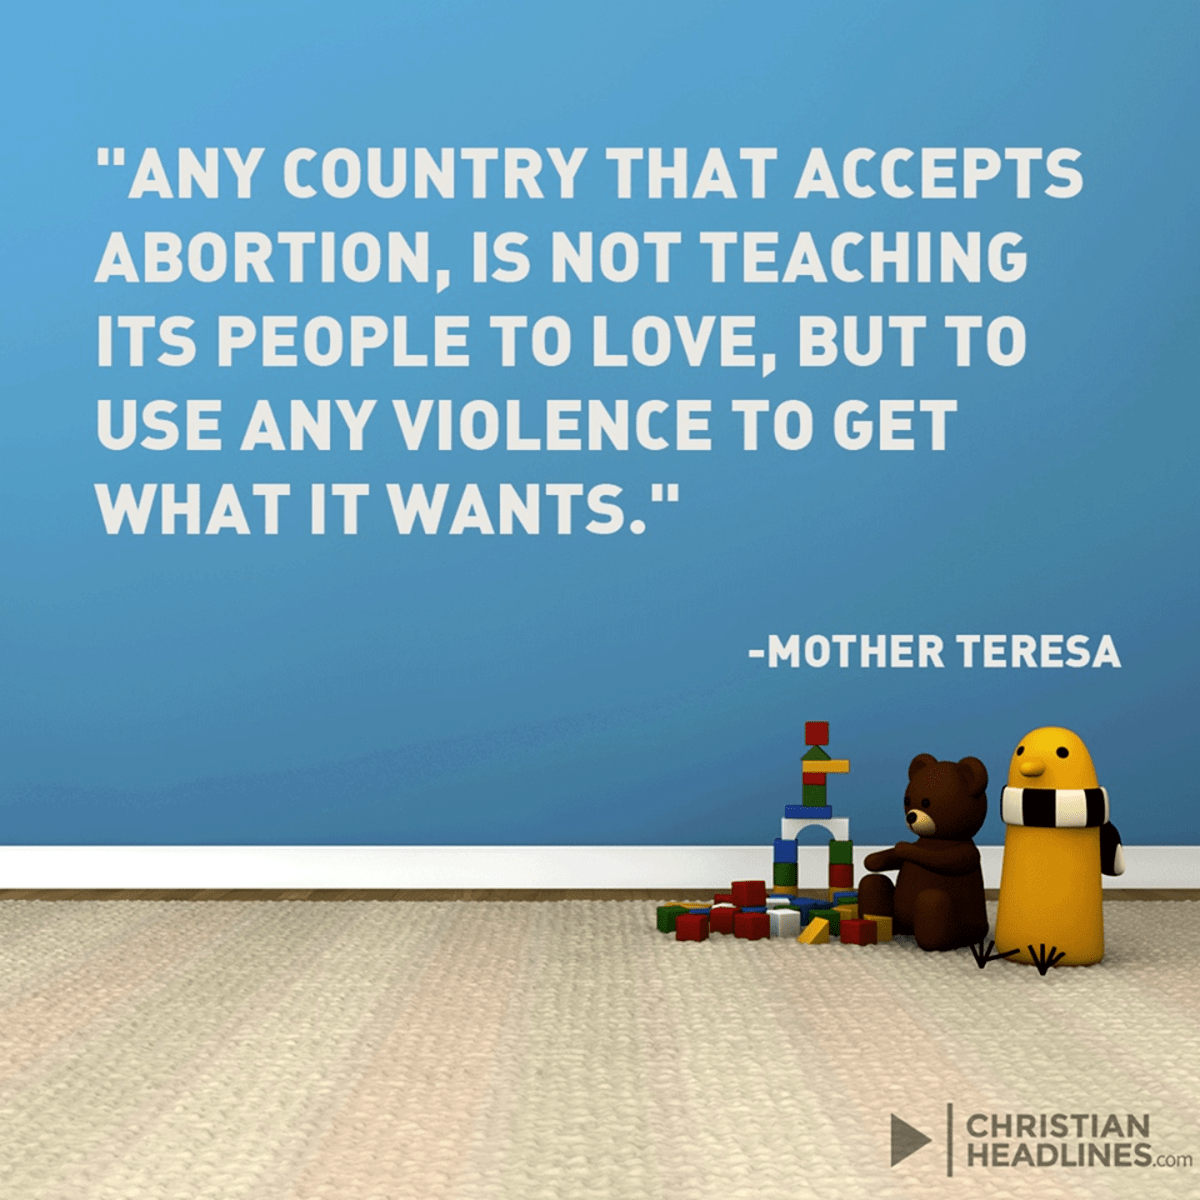 Mother Teresa on Abortion